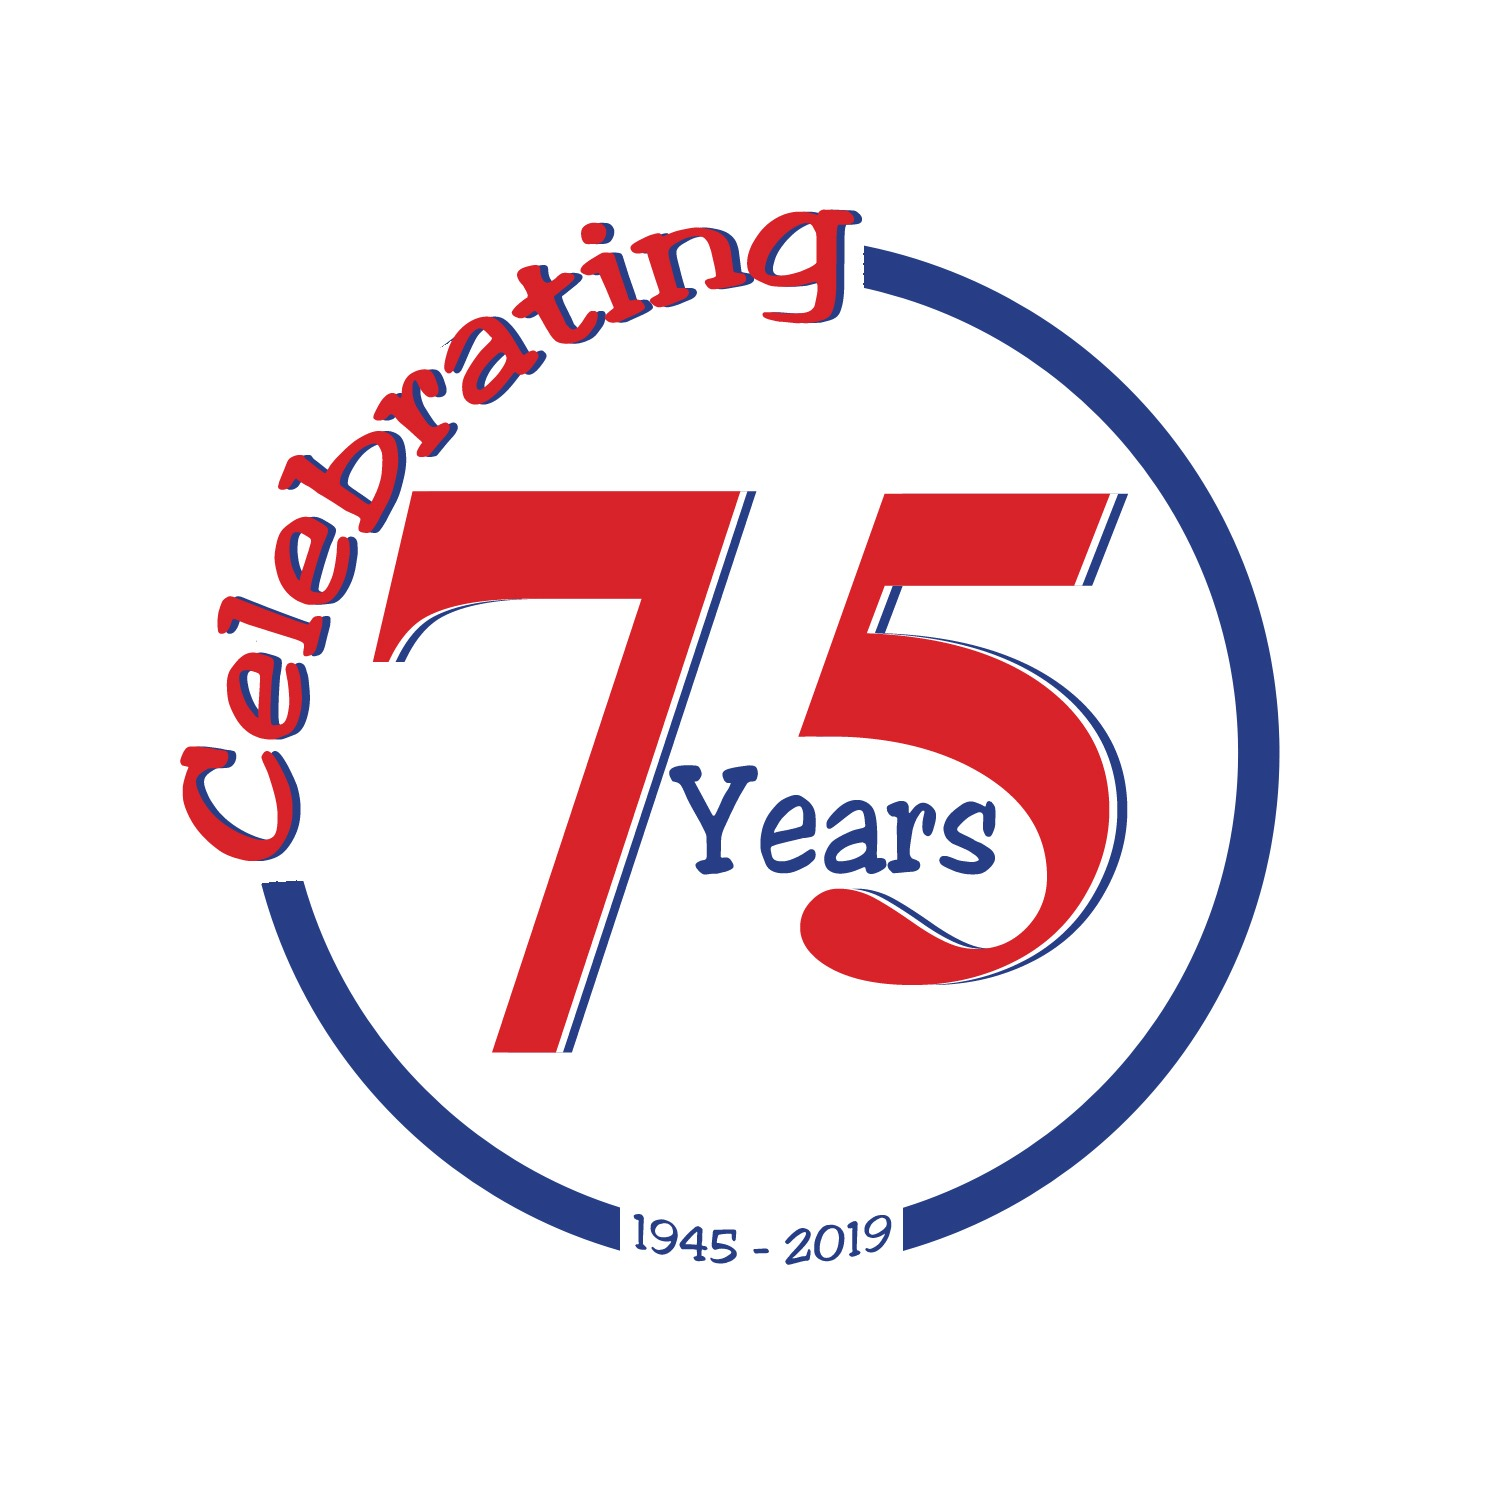 Celebrating 75 Years icon